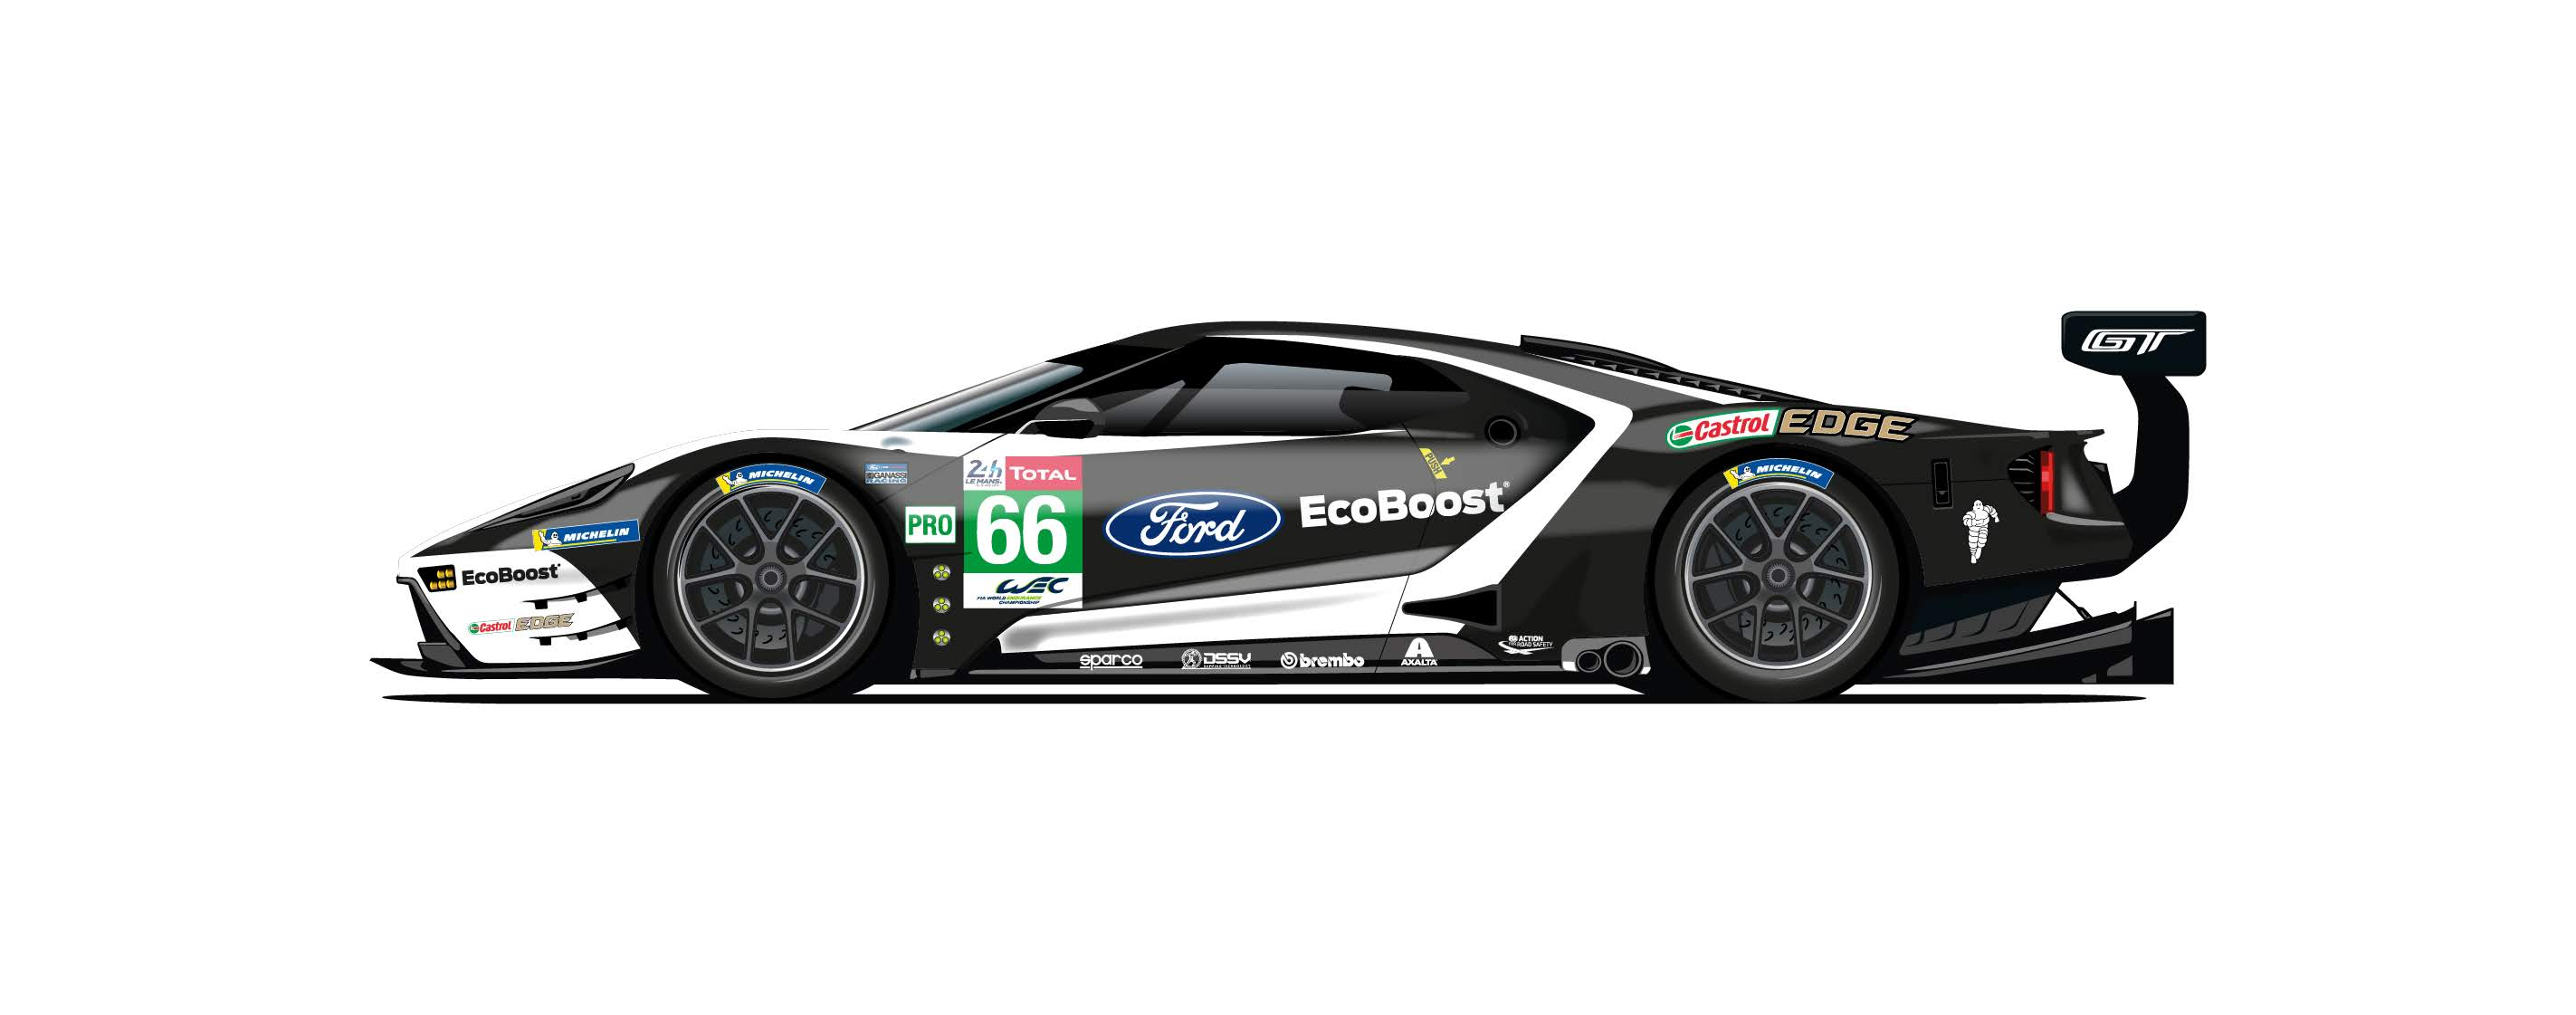 Ford Pays Homage To Le Mans With Celebration Liveries